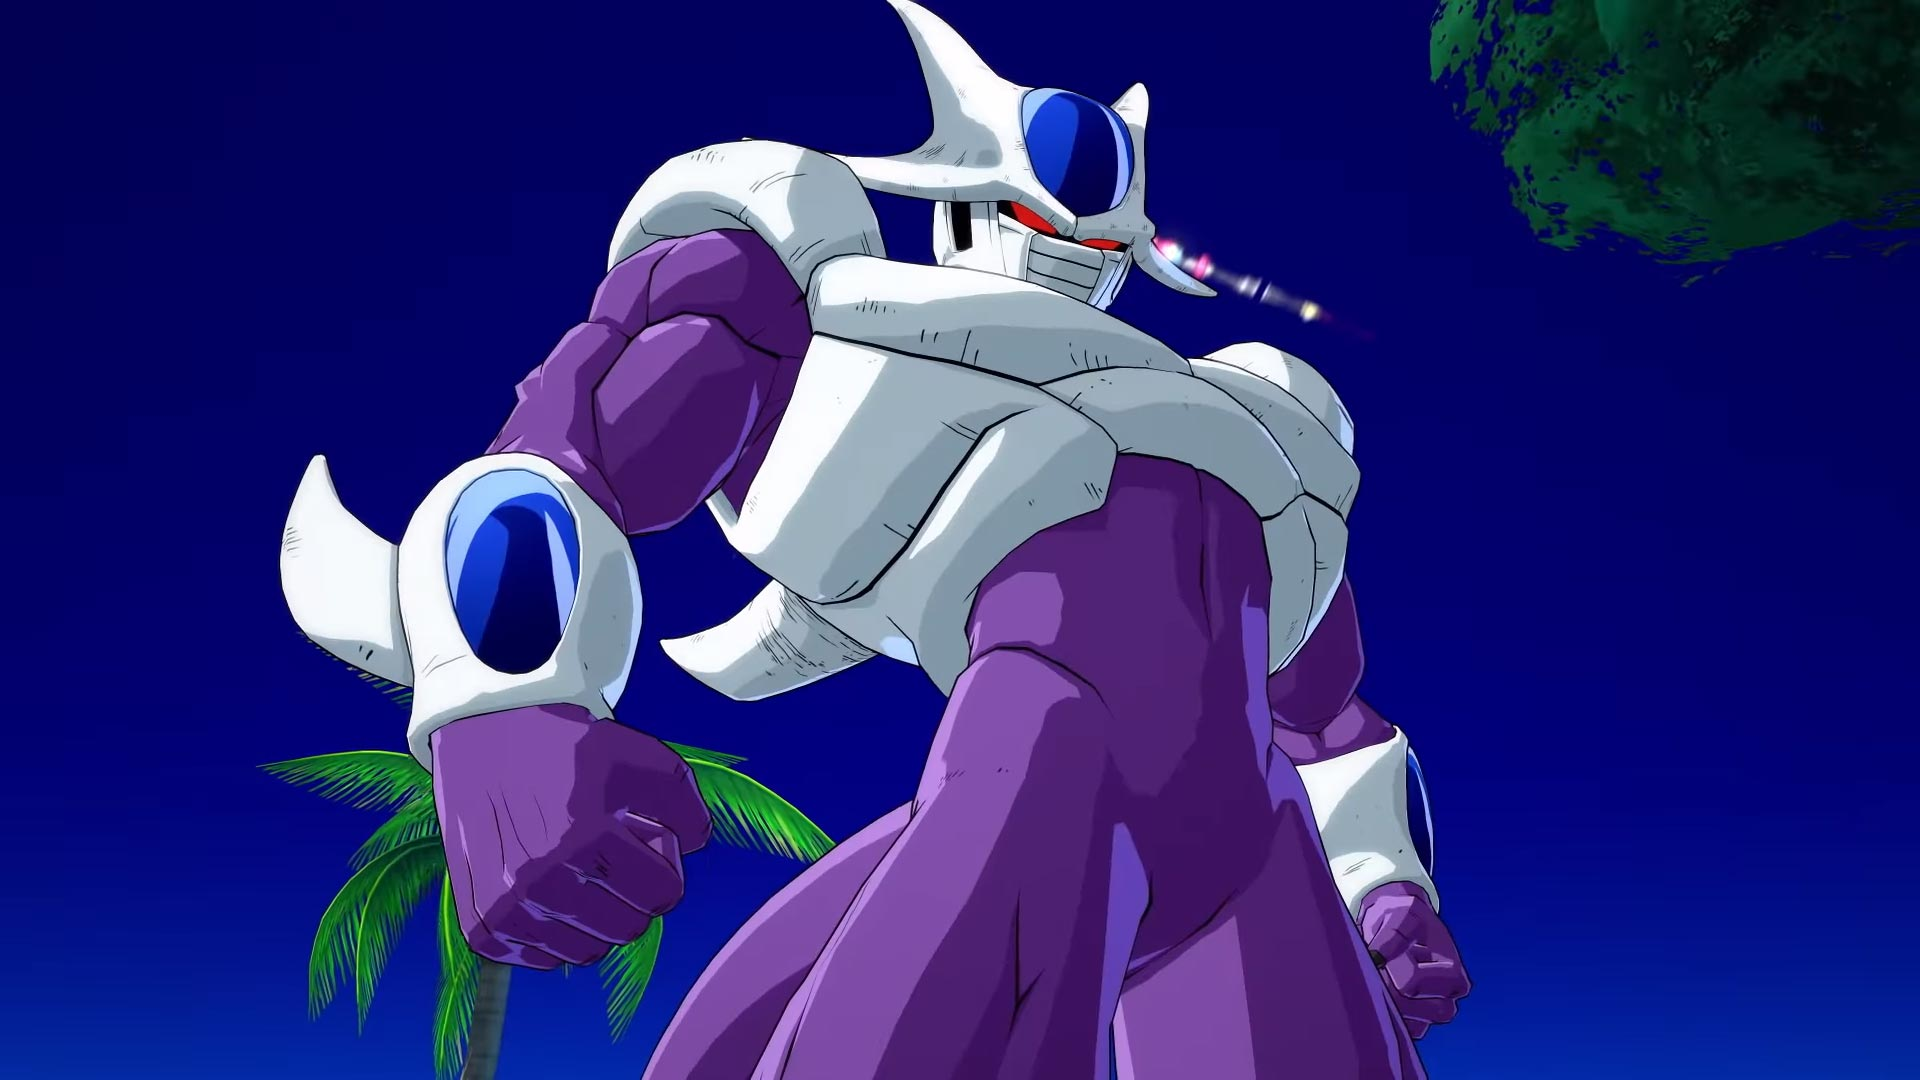 Cooler in Dragon Ball FighterZ 8 out of 9 image gallery